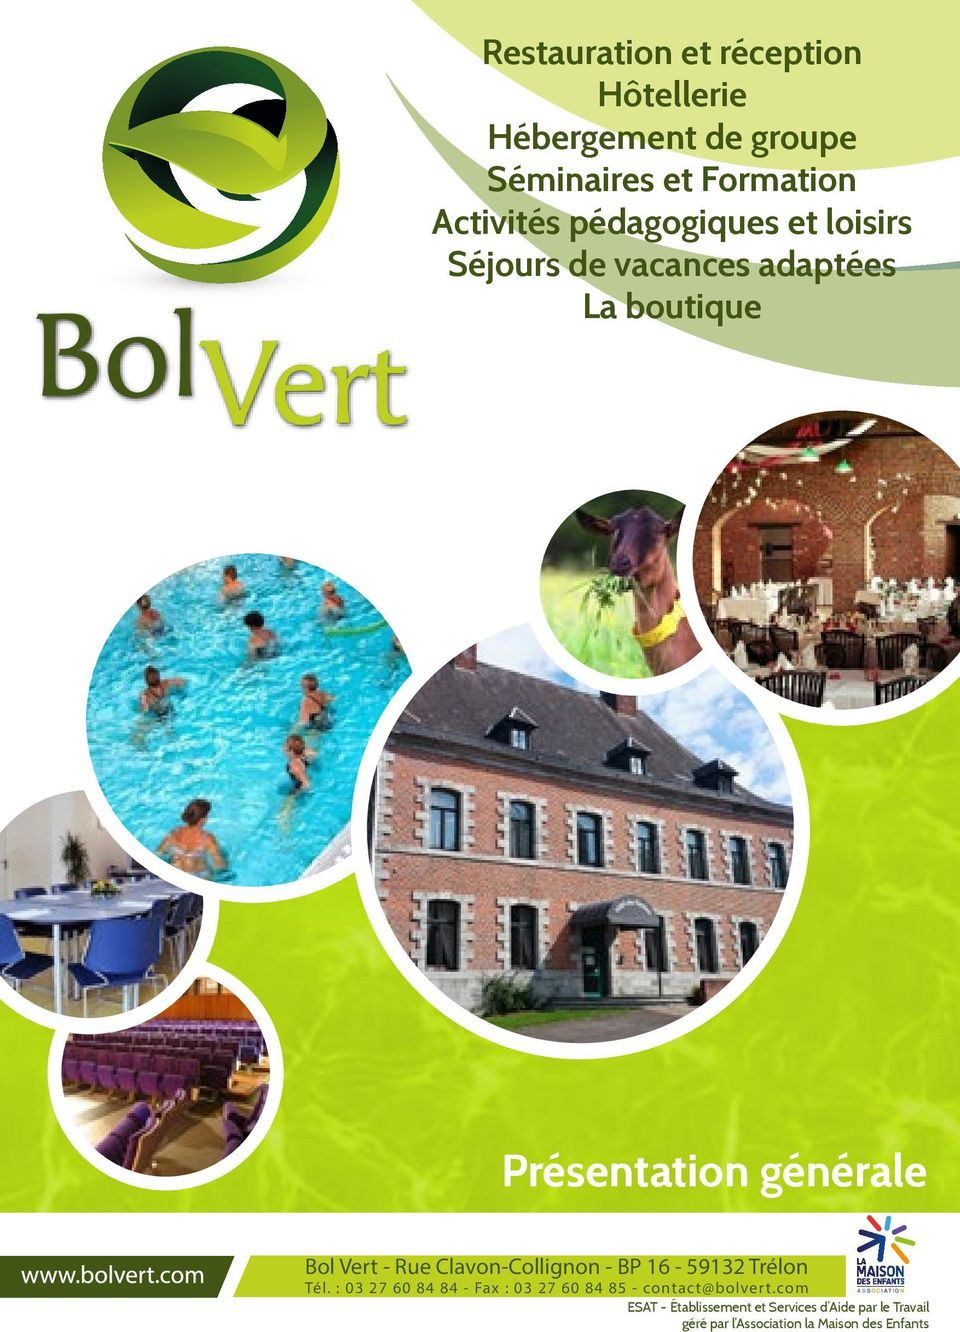 - BP 16-59132 Trélon Tél. : 03 27 60 84 84 - Fax : 03 27 60 84 85 - contact@bolvert.